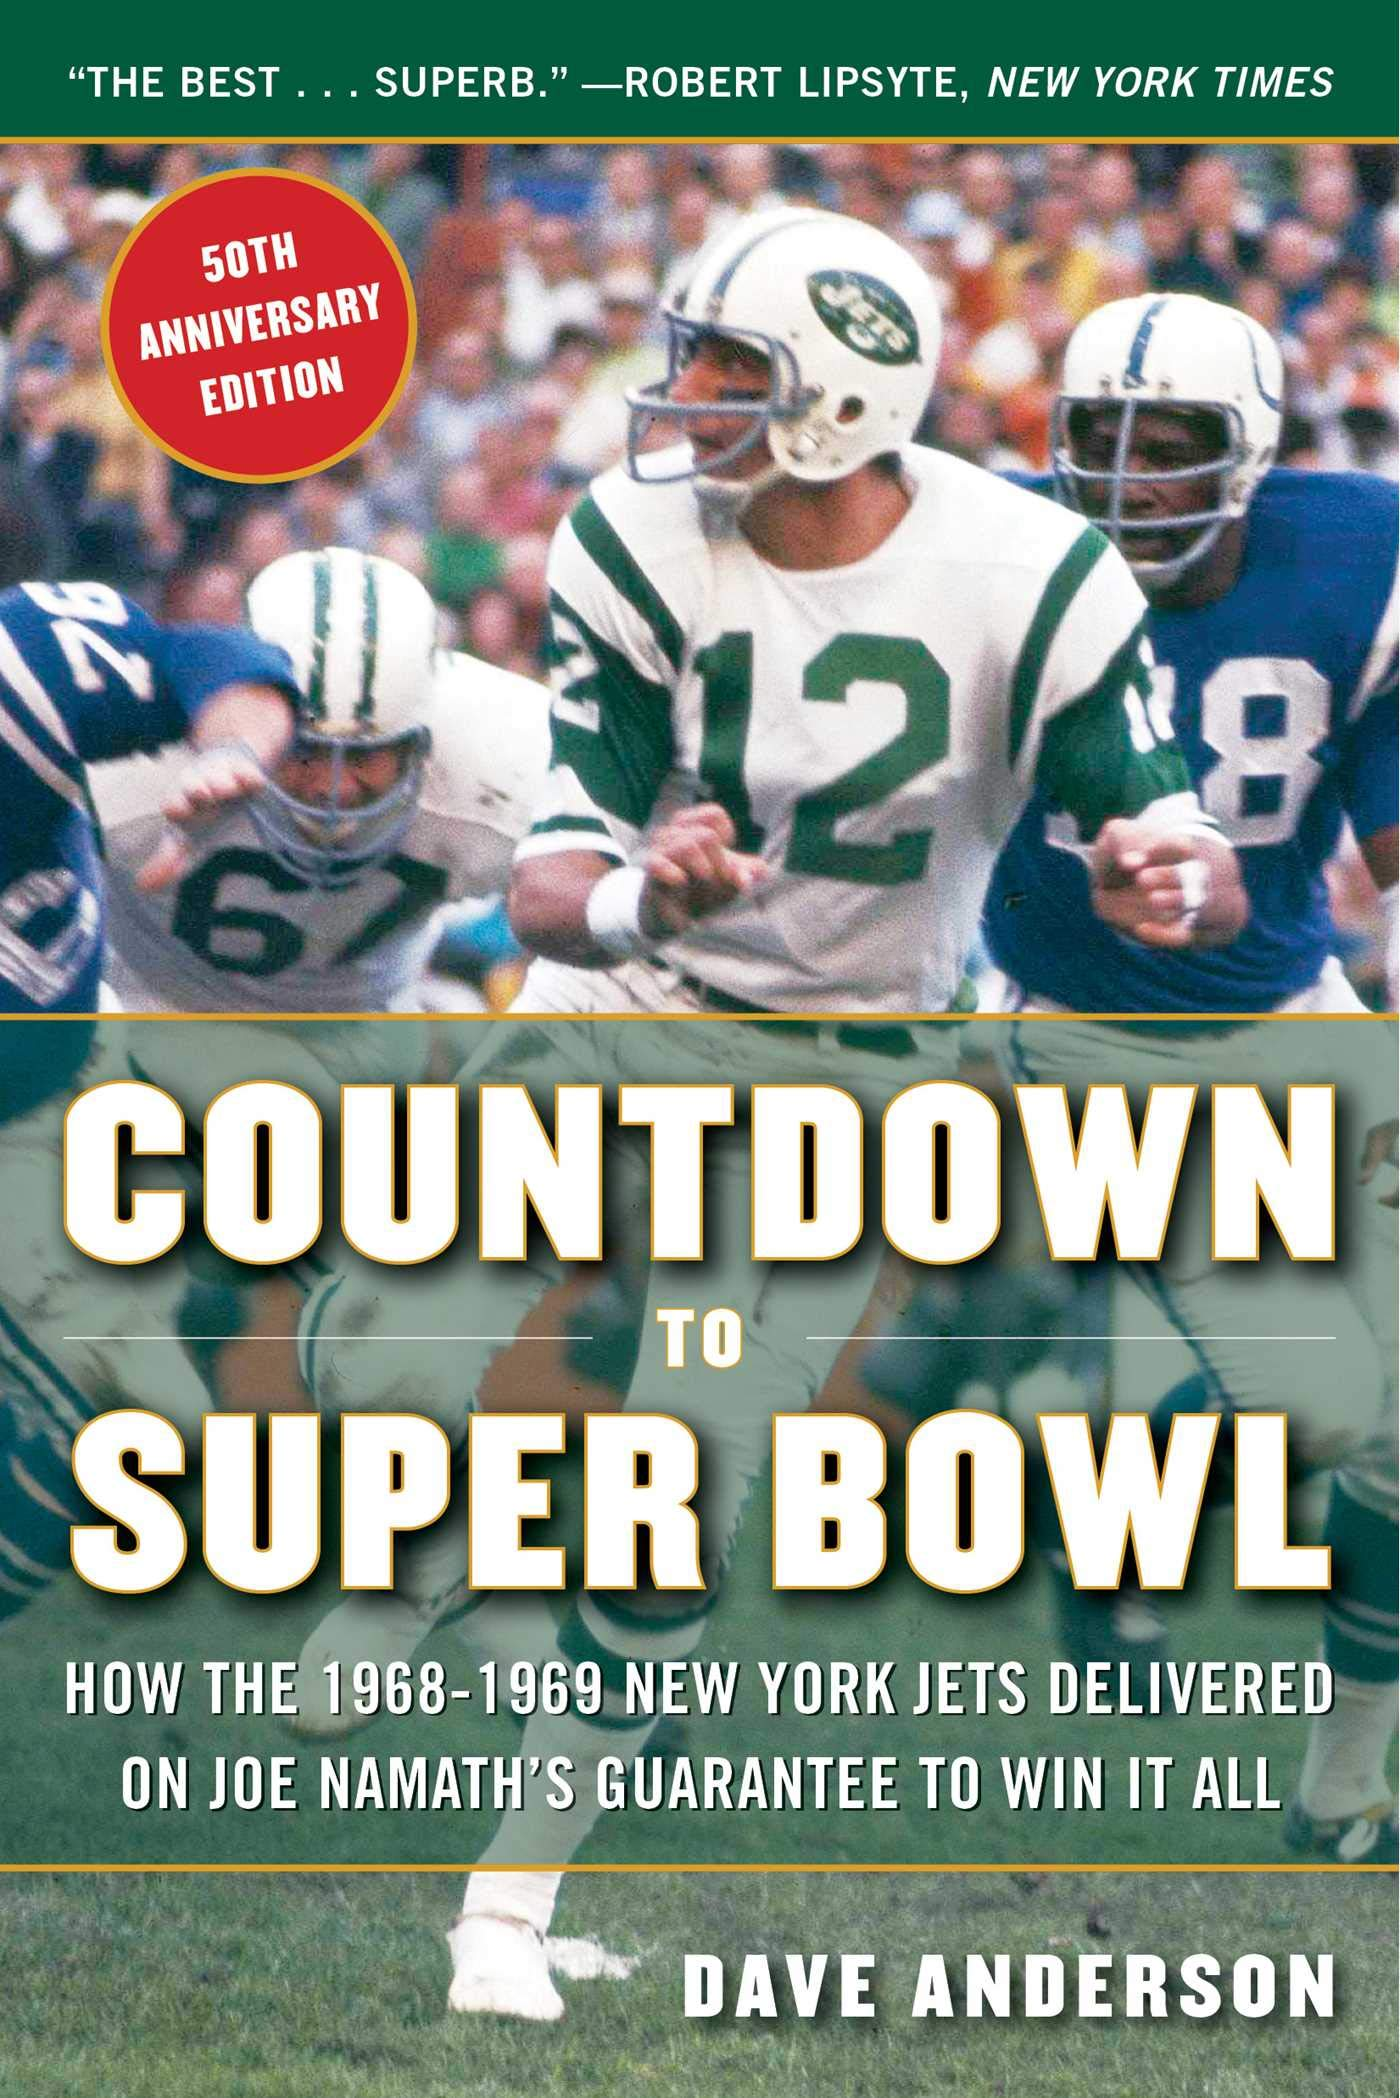 66056f9527b Countdown to Super Bowl: How the 1968-1969 New York Jets Delivered on Joe  Namath's Guarantee to Win it All Paperback – October 2, 2018